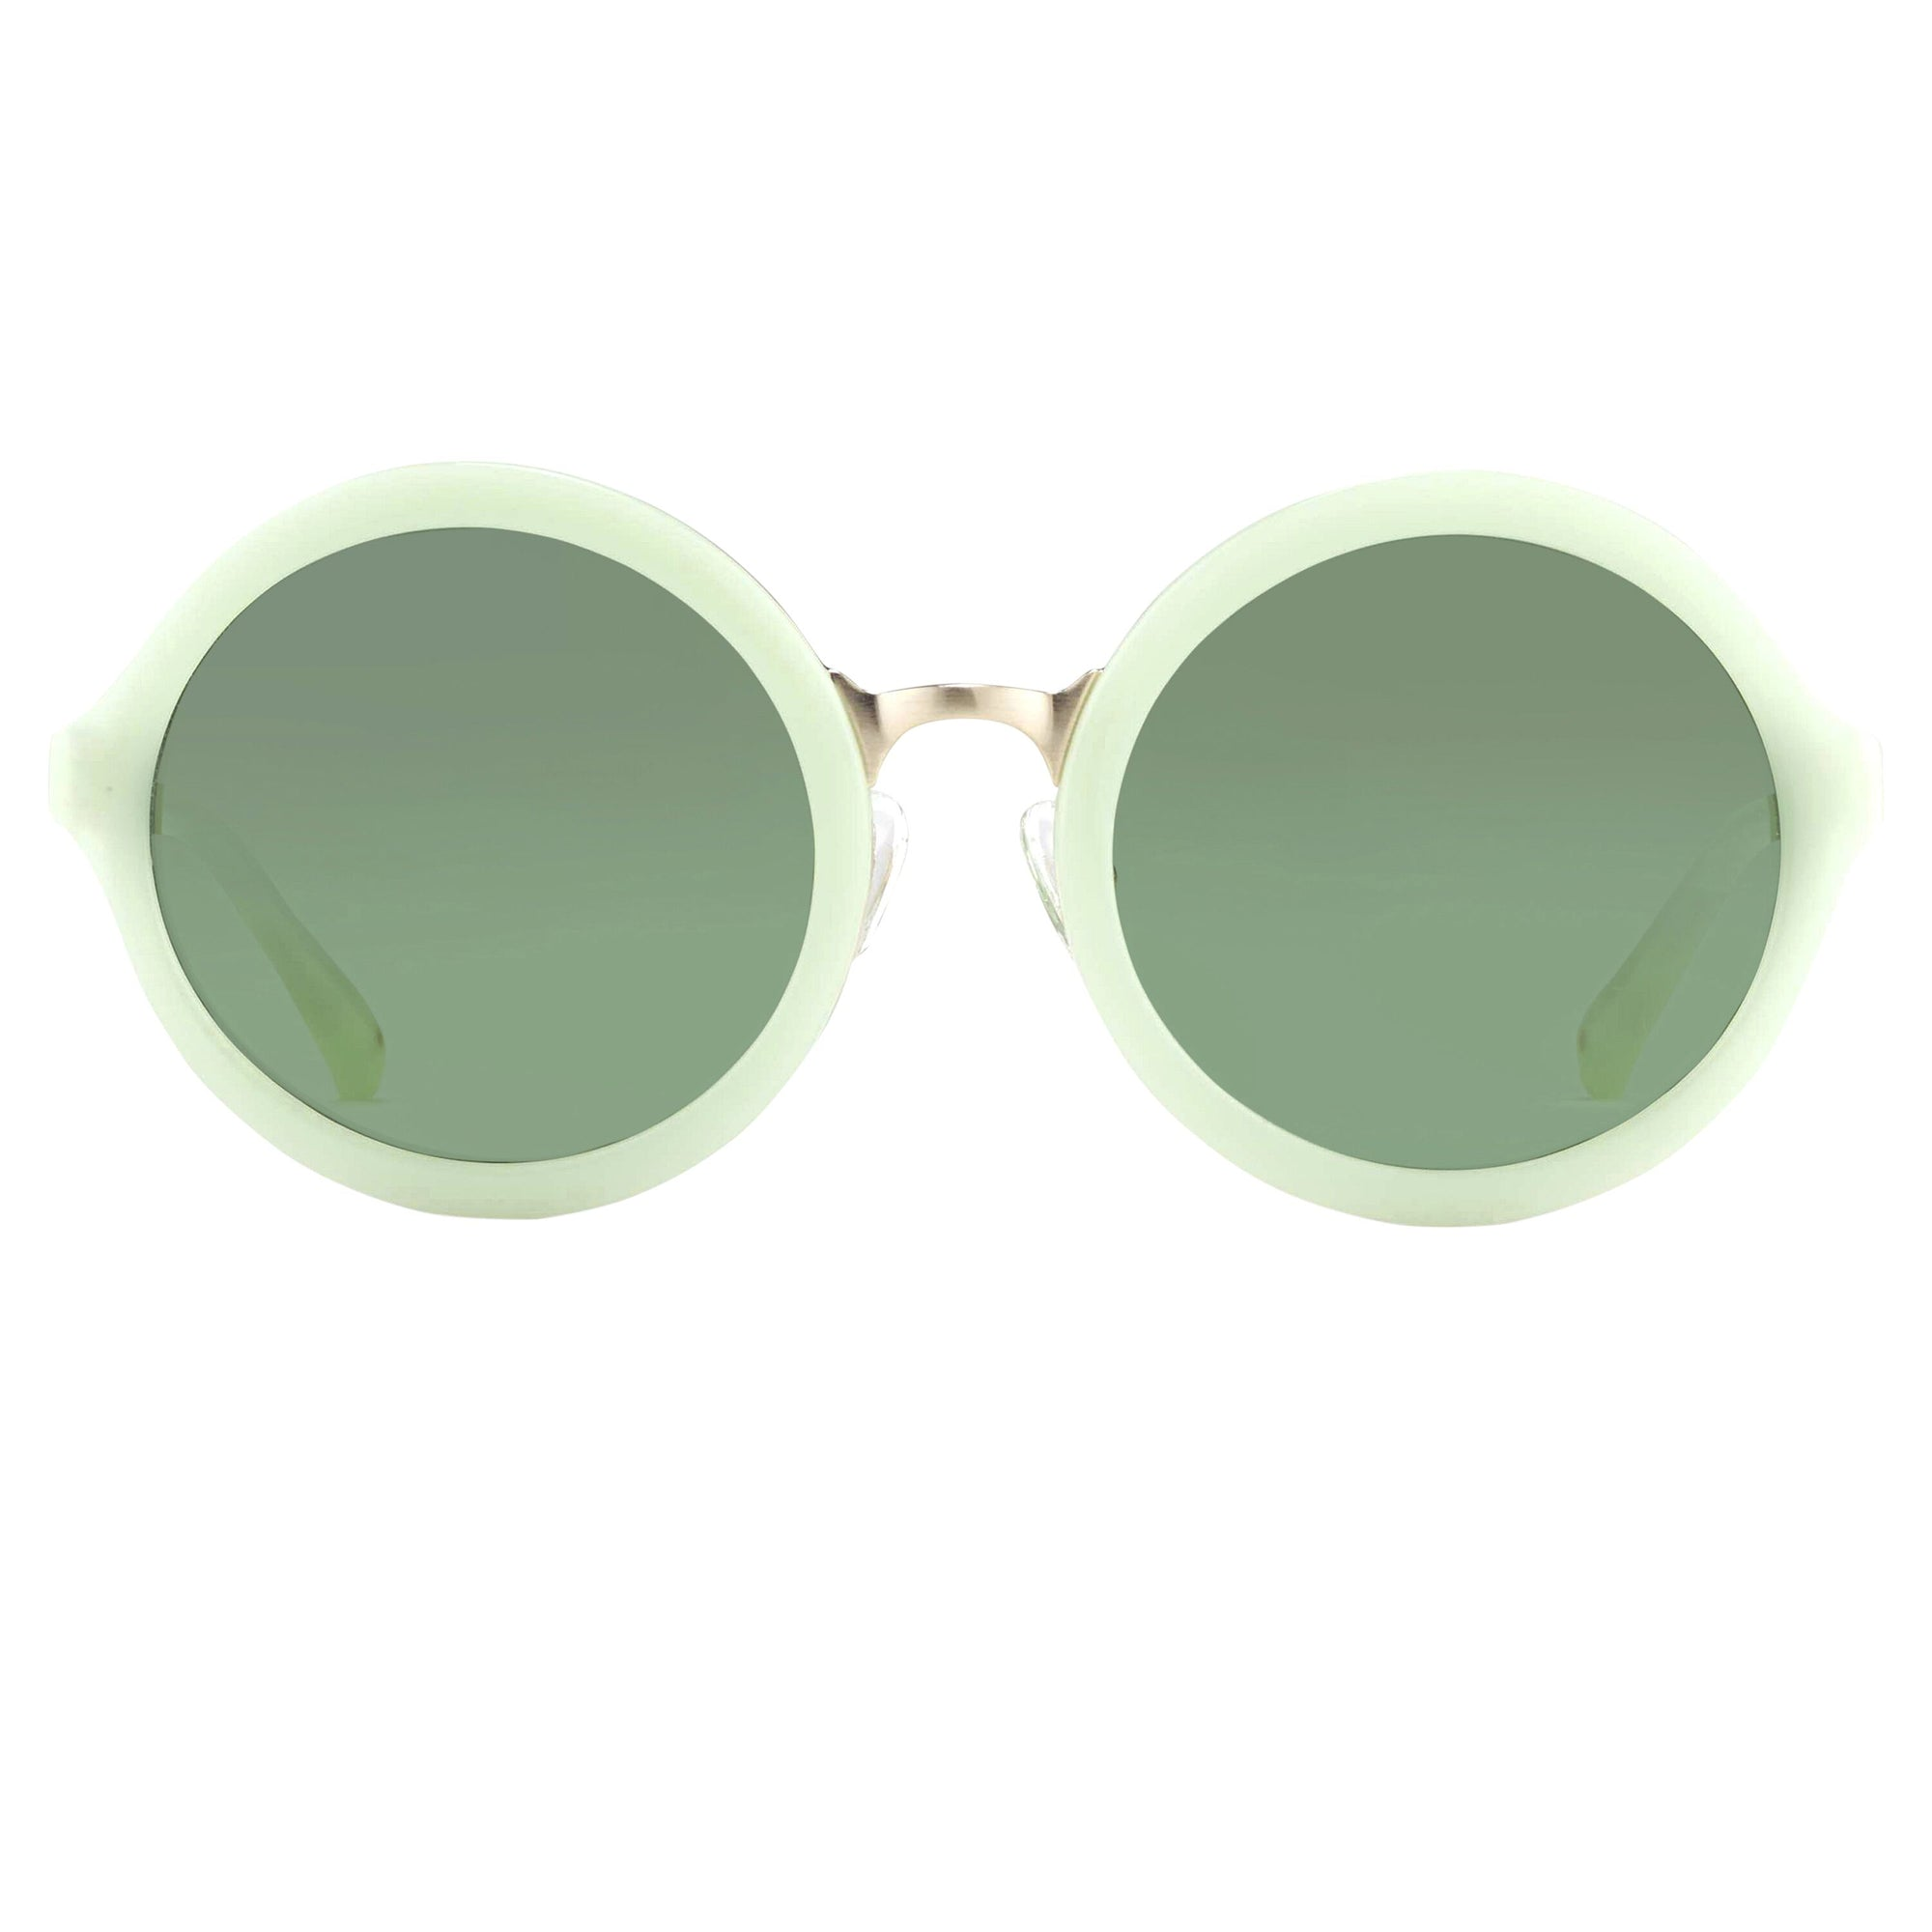 Phillip Lim Sunglasses Round Midori Green and Green